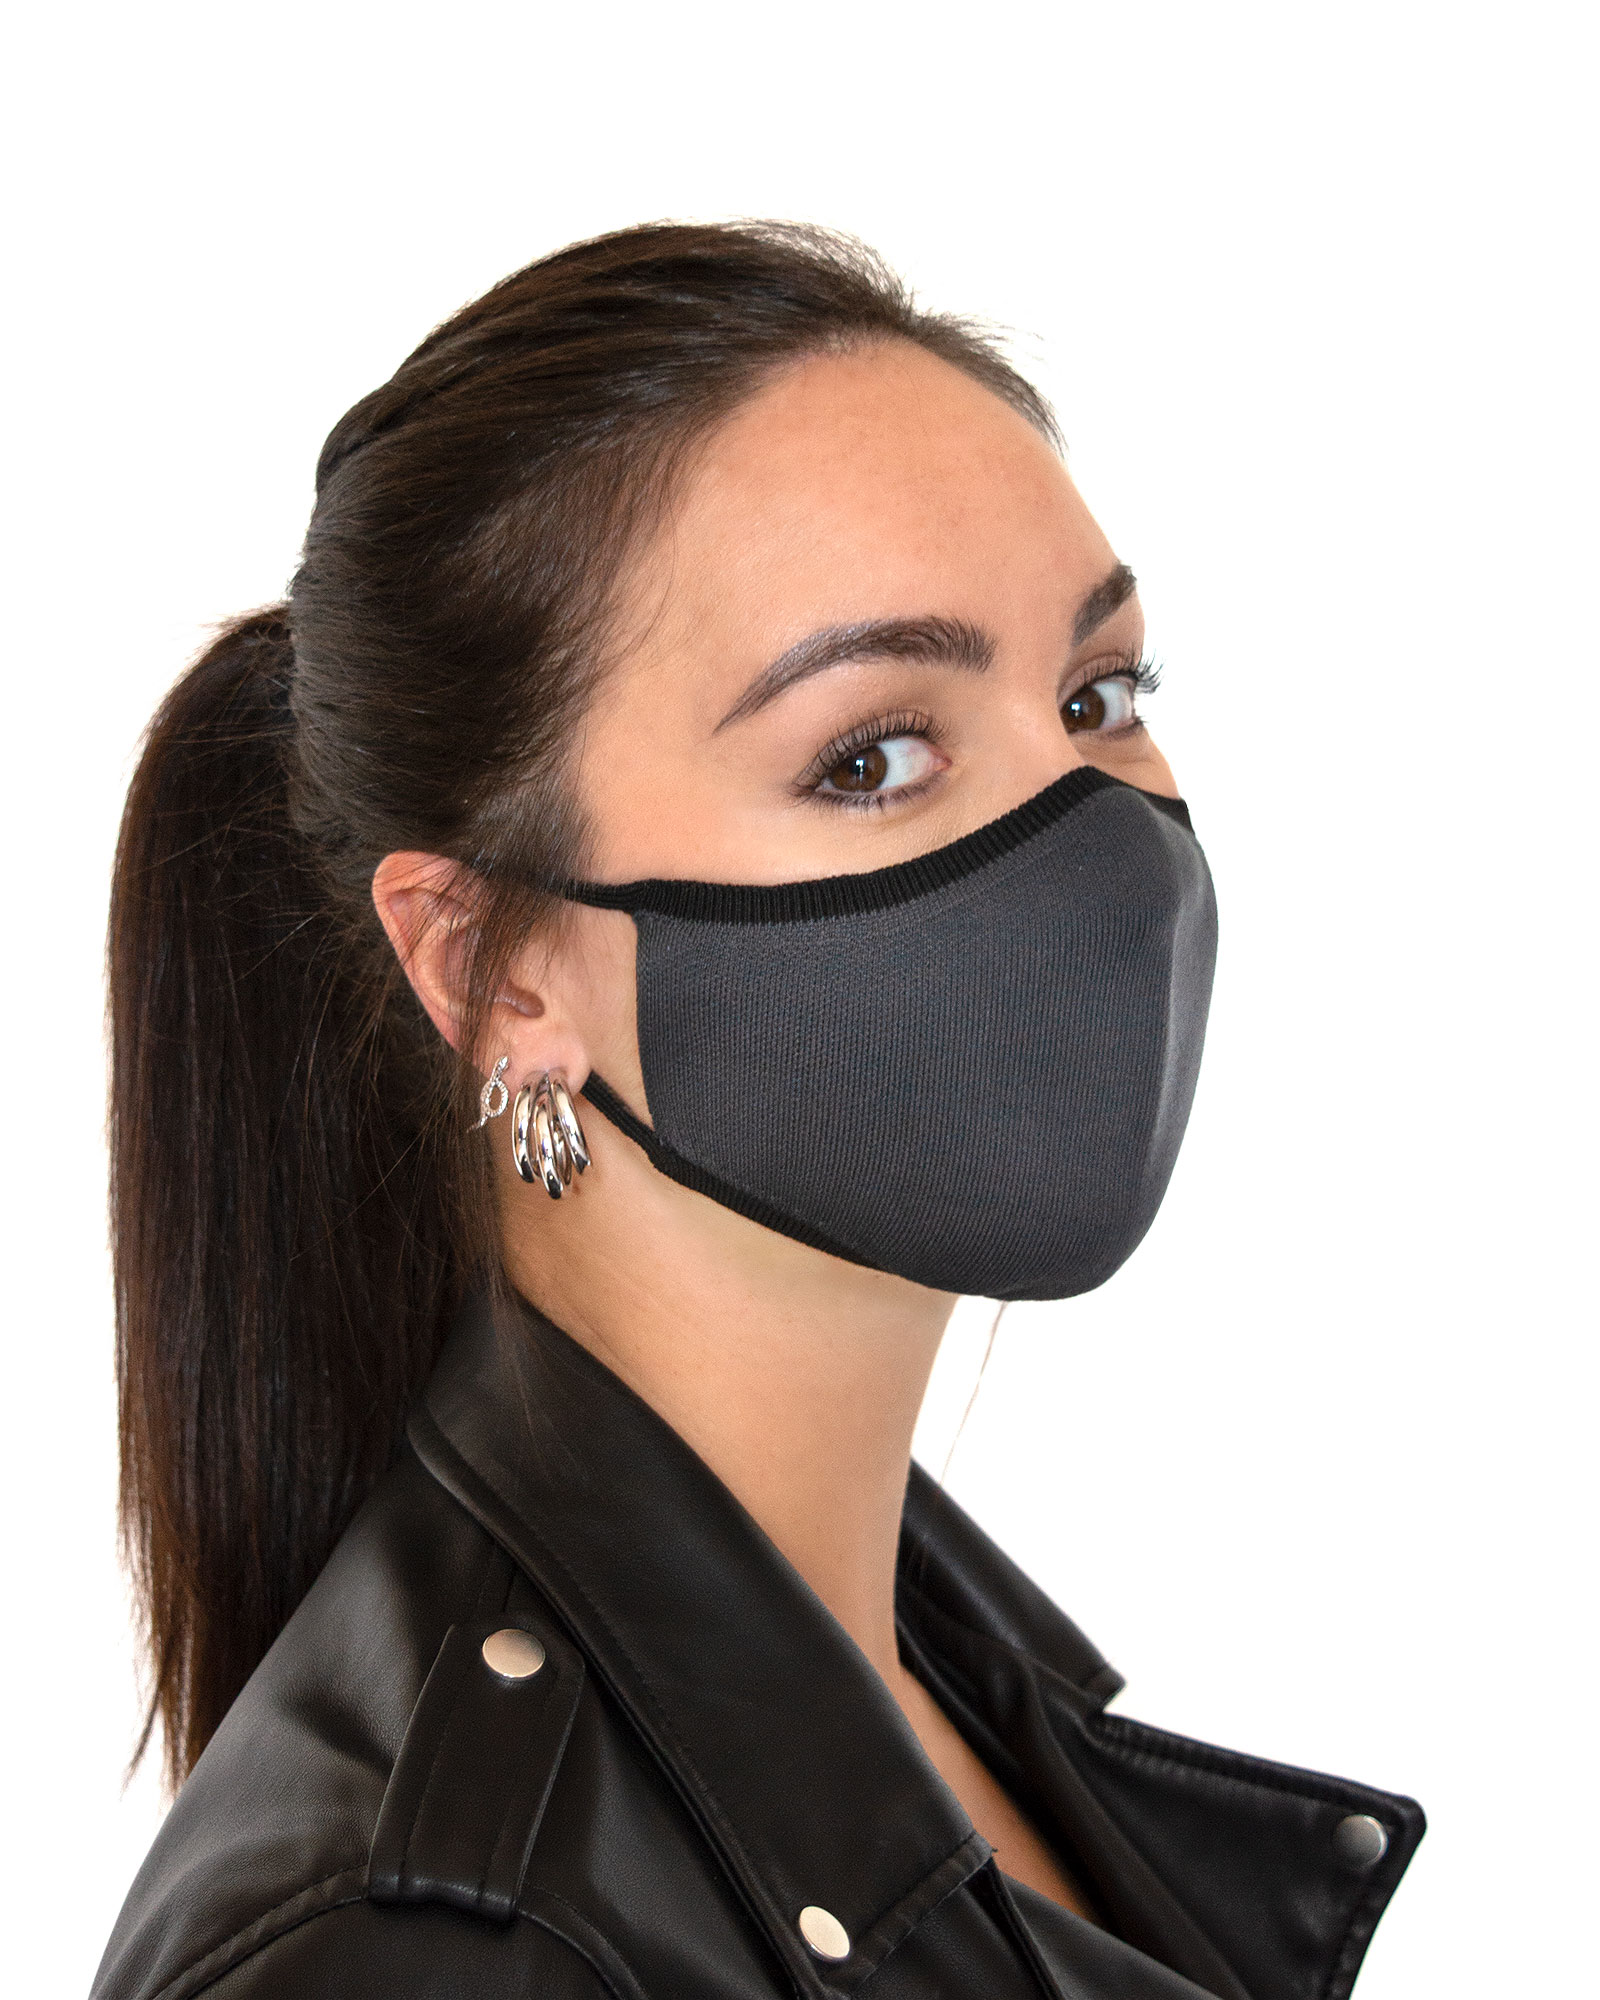 MASK-01S-relaxsan-unima-mask_380-DARK-GREY_woman